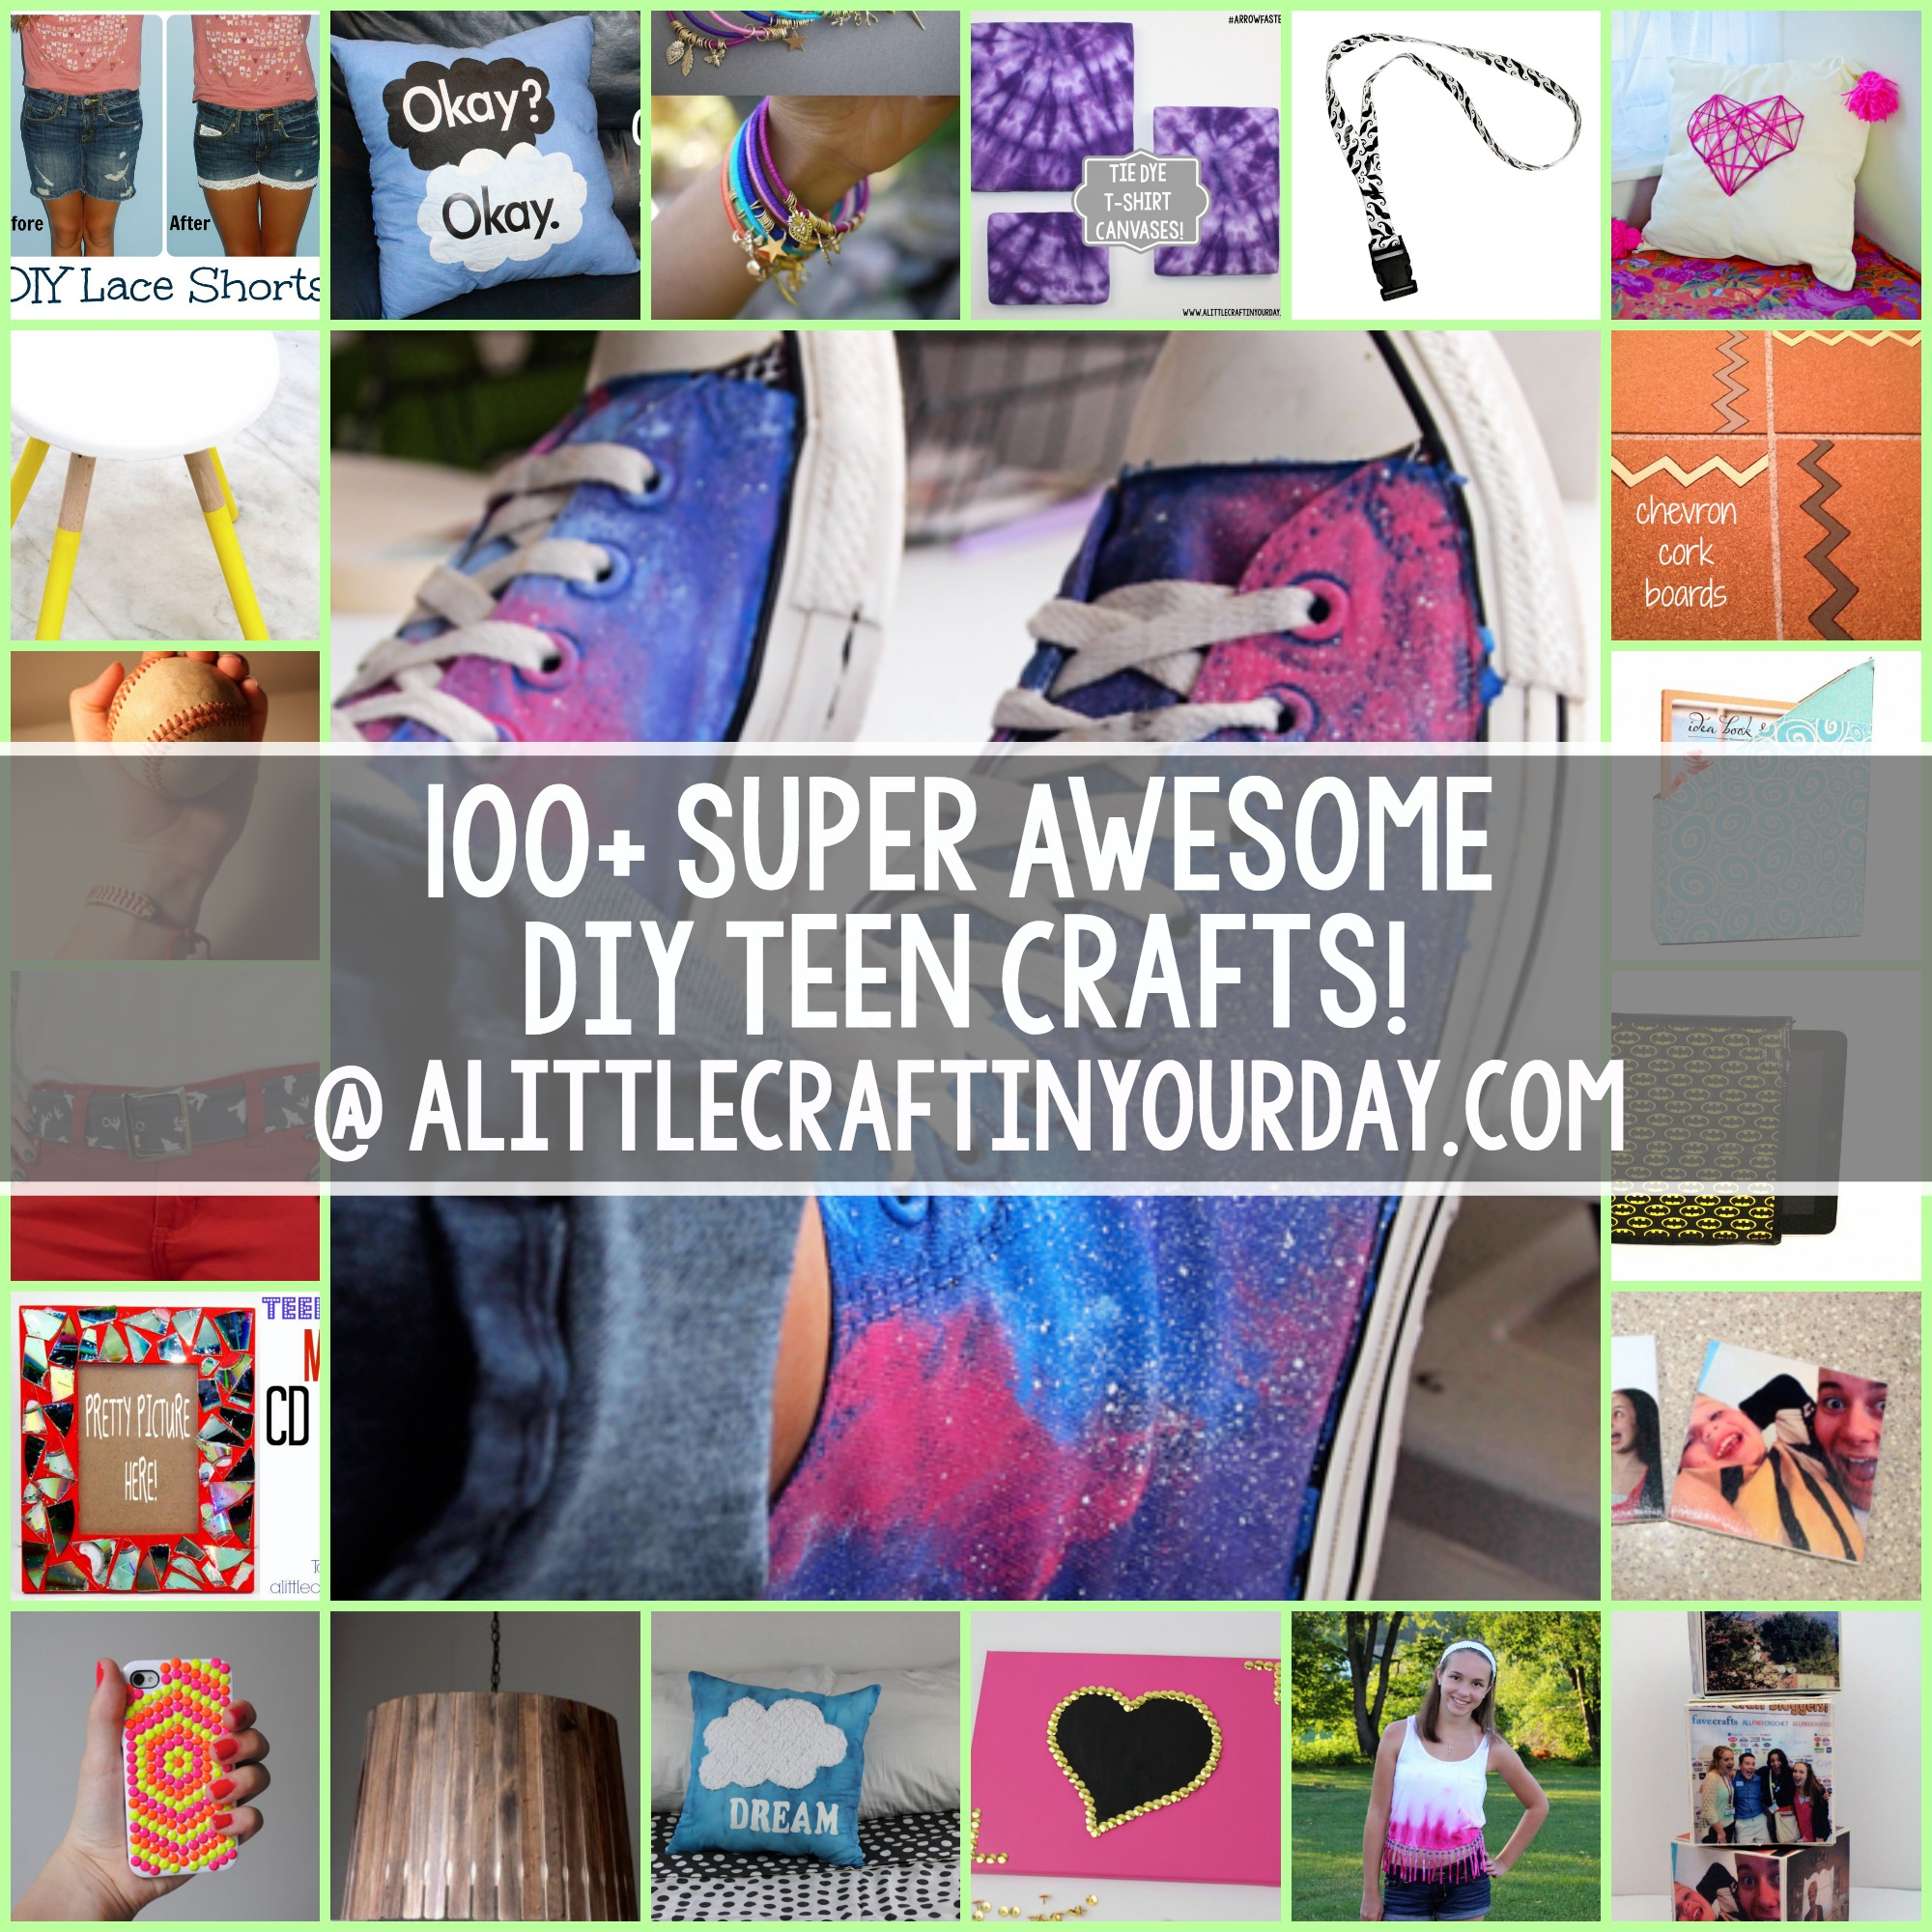 100 super awesome crafts for teens a little craft in